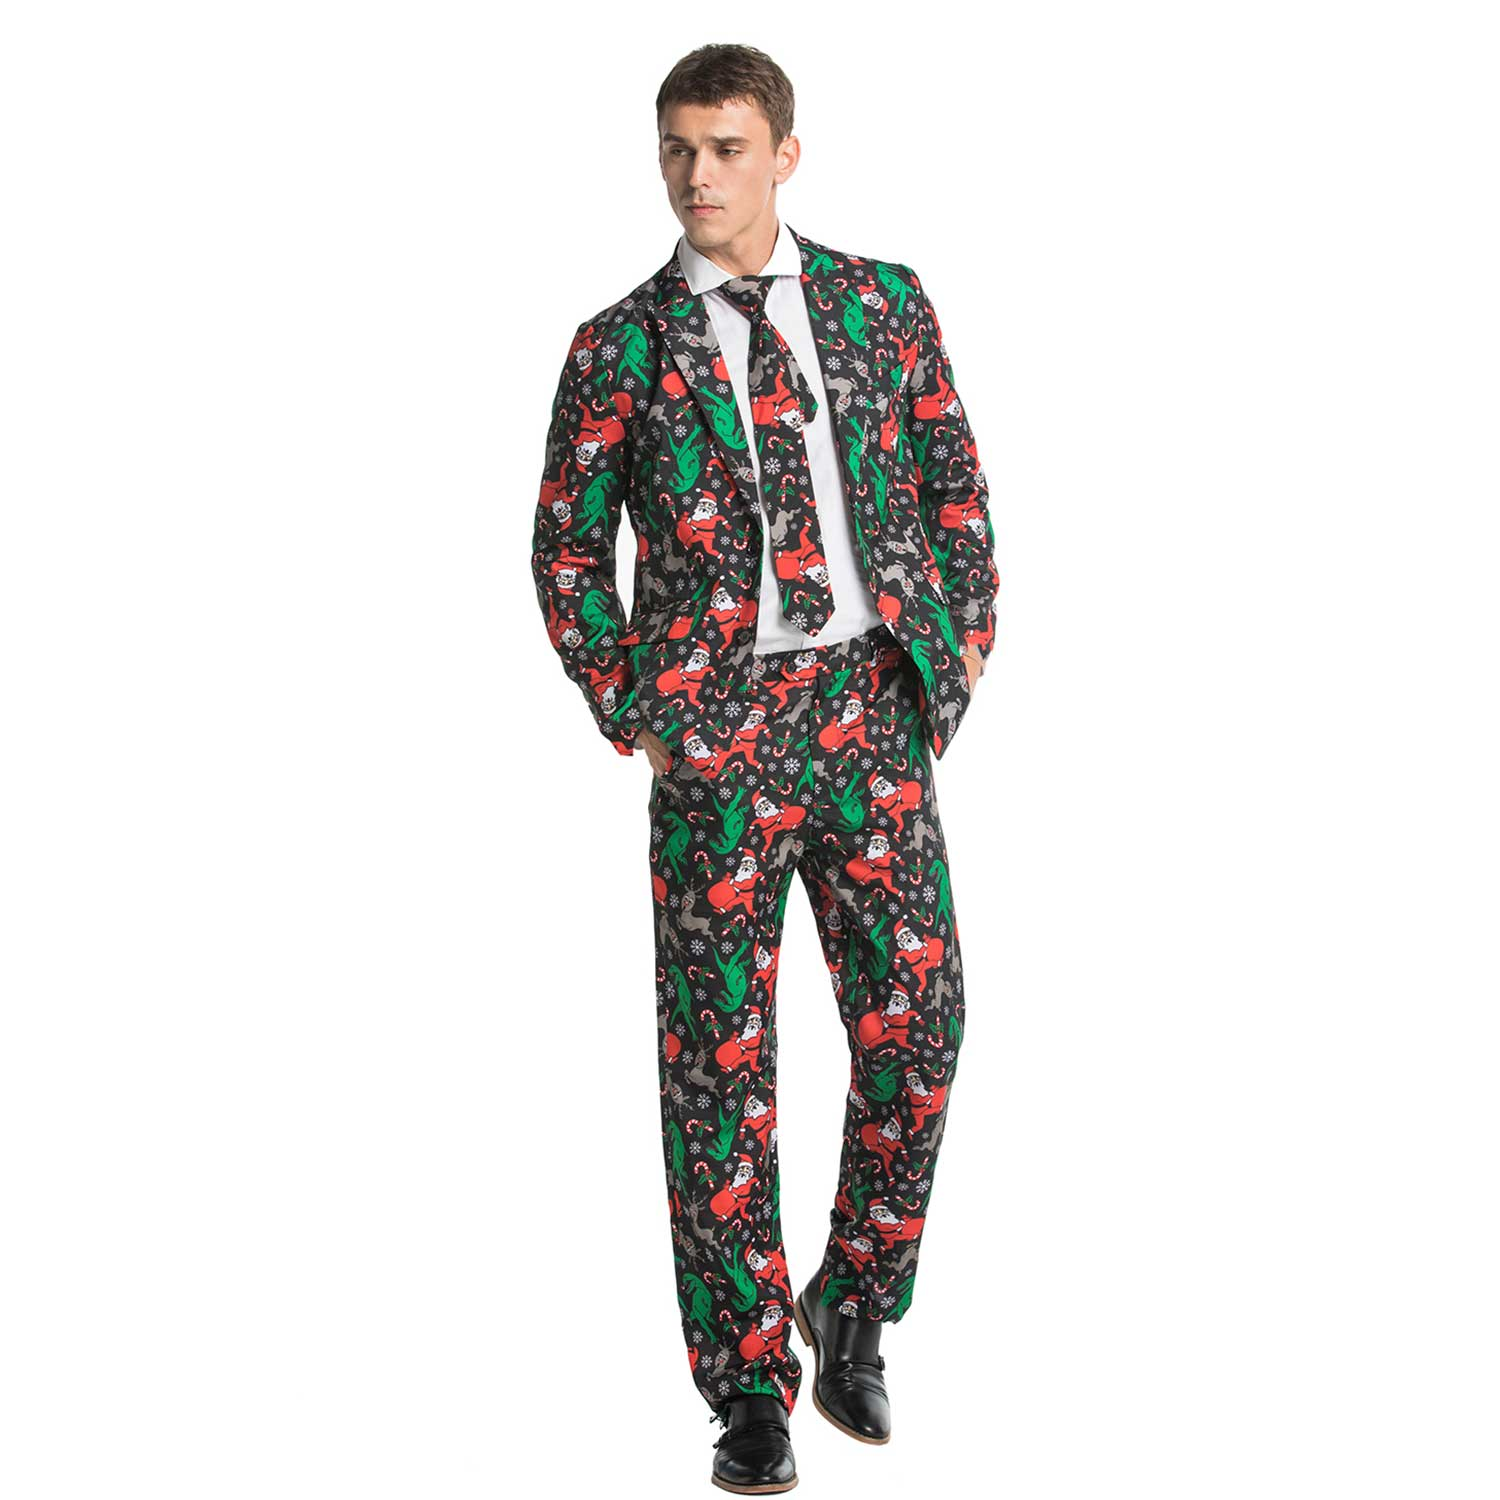 Funny Dinosaur Party Men's Christmas Suits | You Look Ugly ...